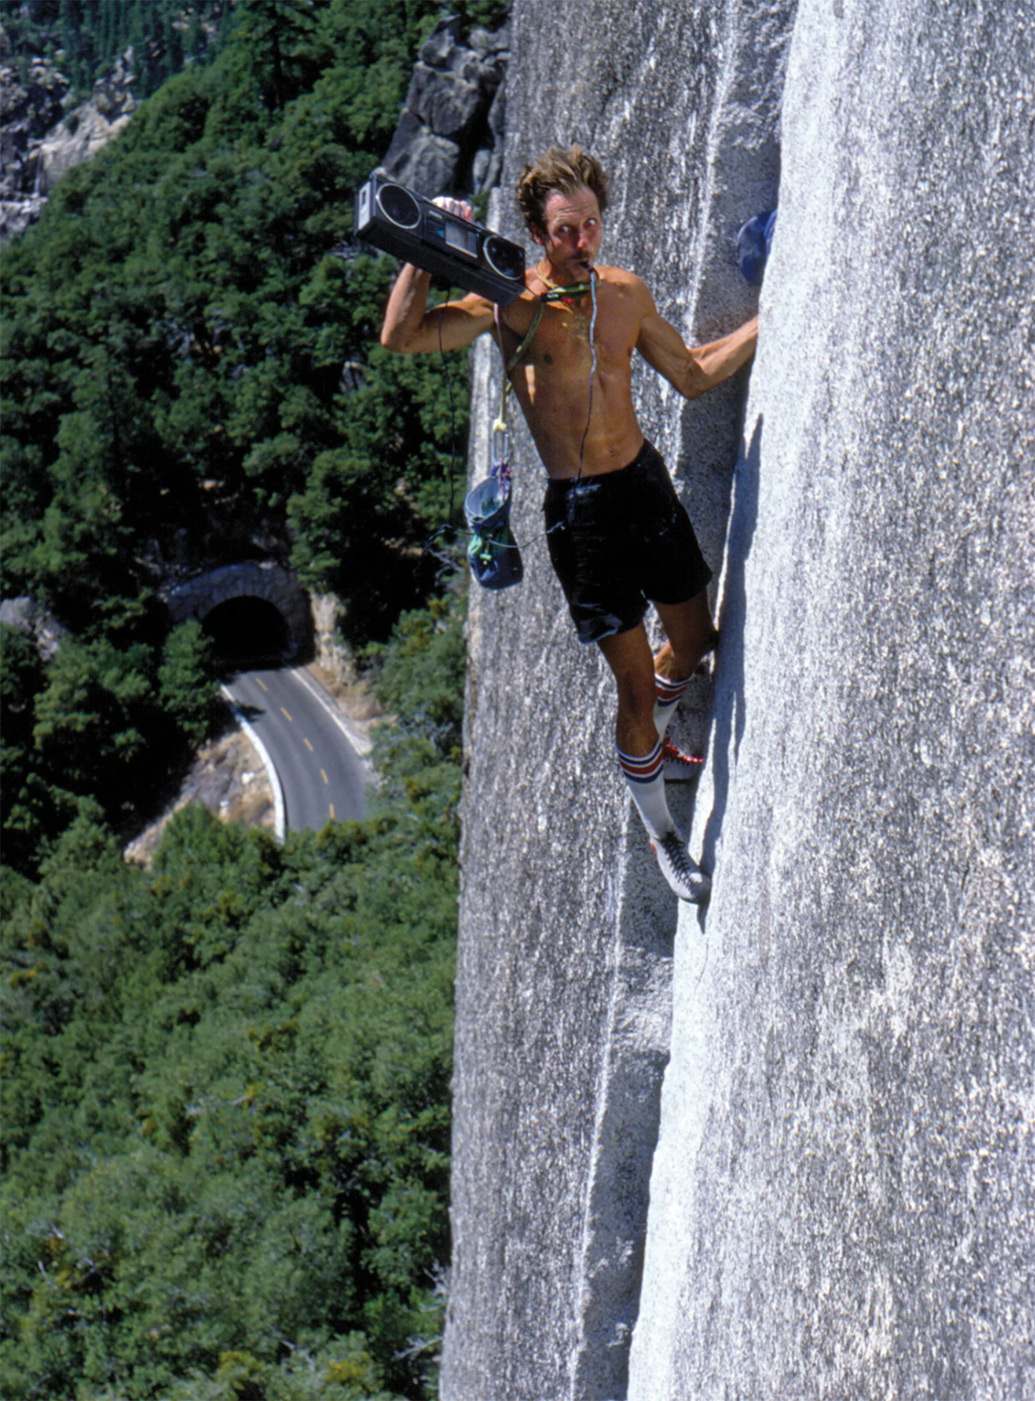 Werner Braun soloing Reed's Pinnacle Direct (5.10a) in the 1970s. Photo by Bob Gaines.